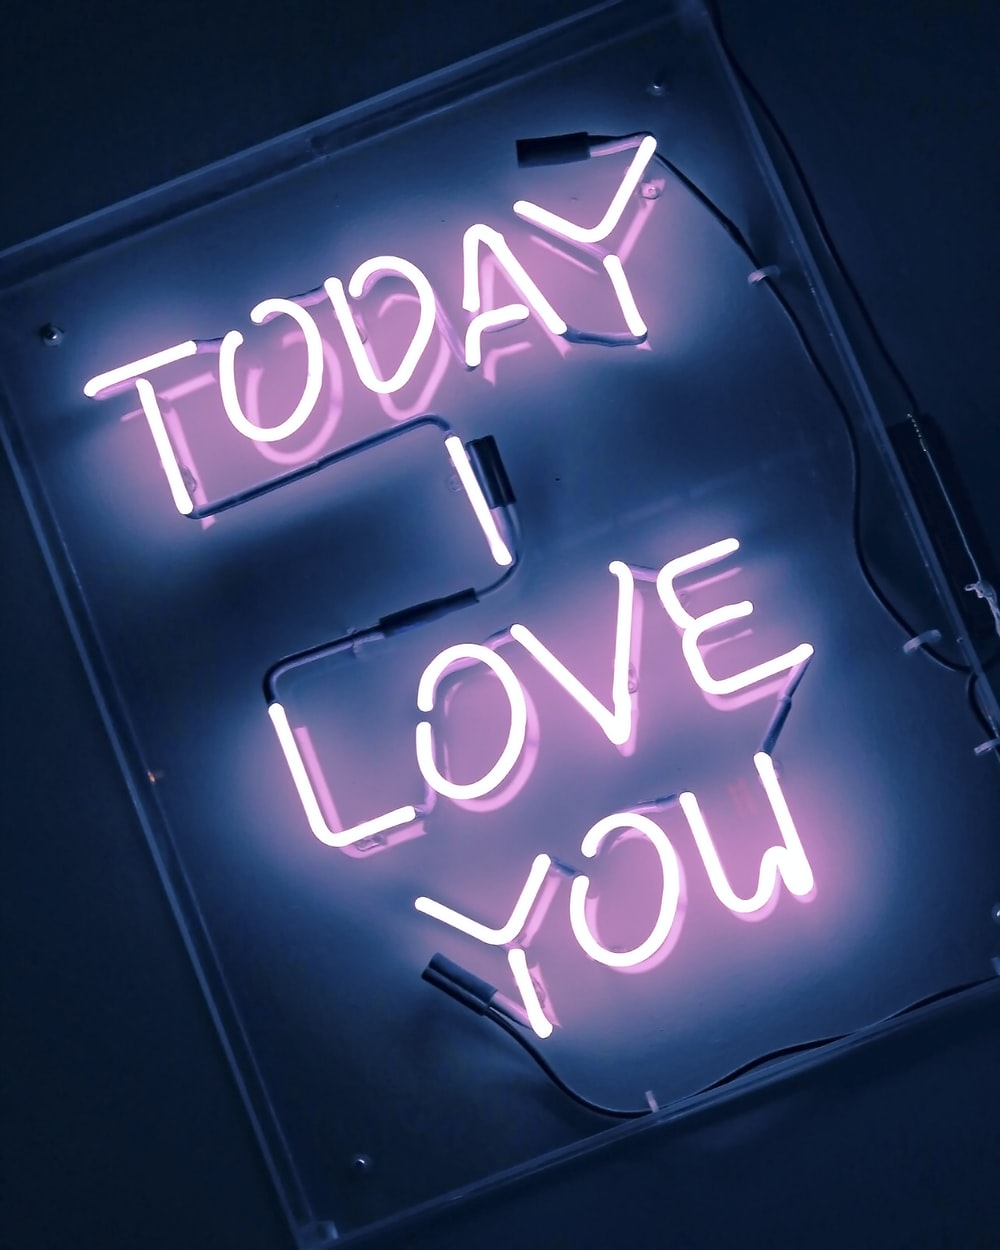 today love you neon light signage